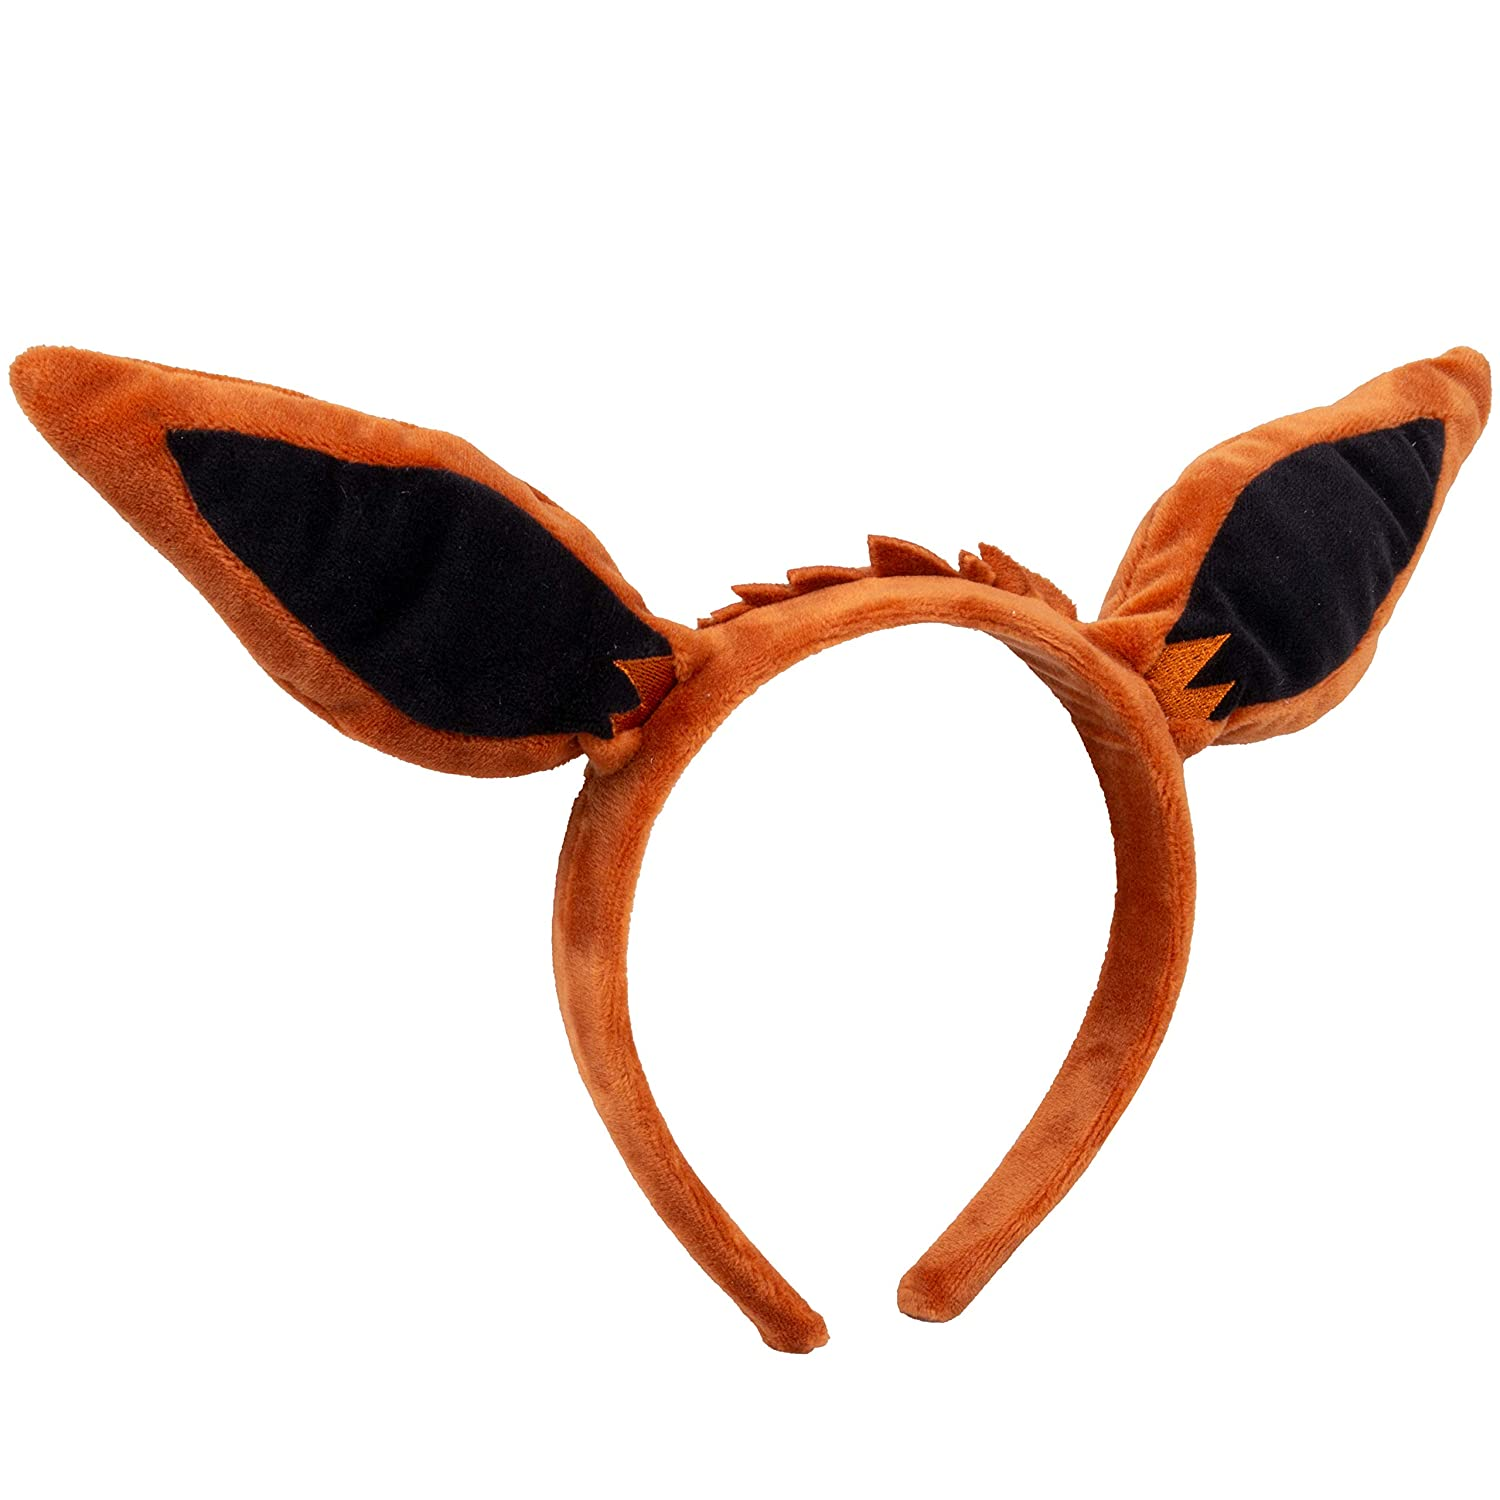 Pokémon Eevee Plush Headband Eevee Ears for Dress Up Halloween and More One Size Fits All